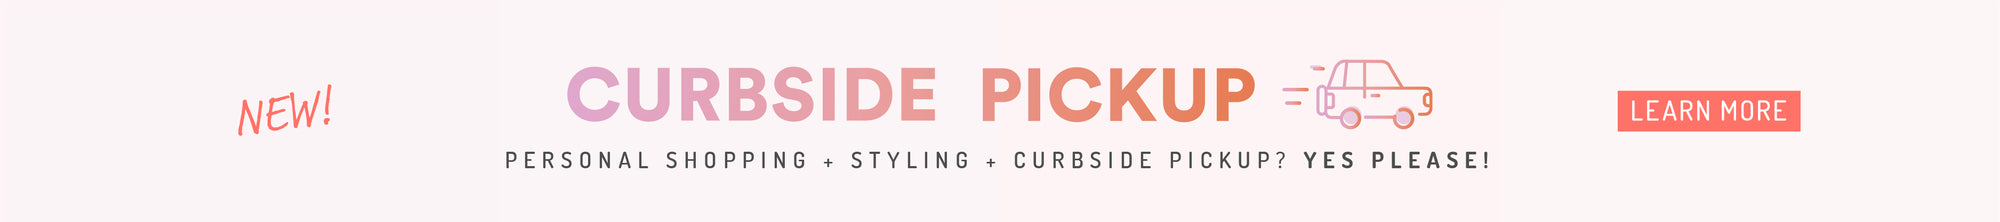 New Curbside Pickup! Learn more.